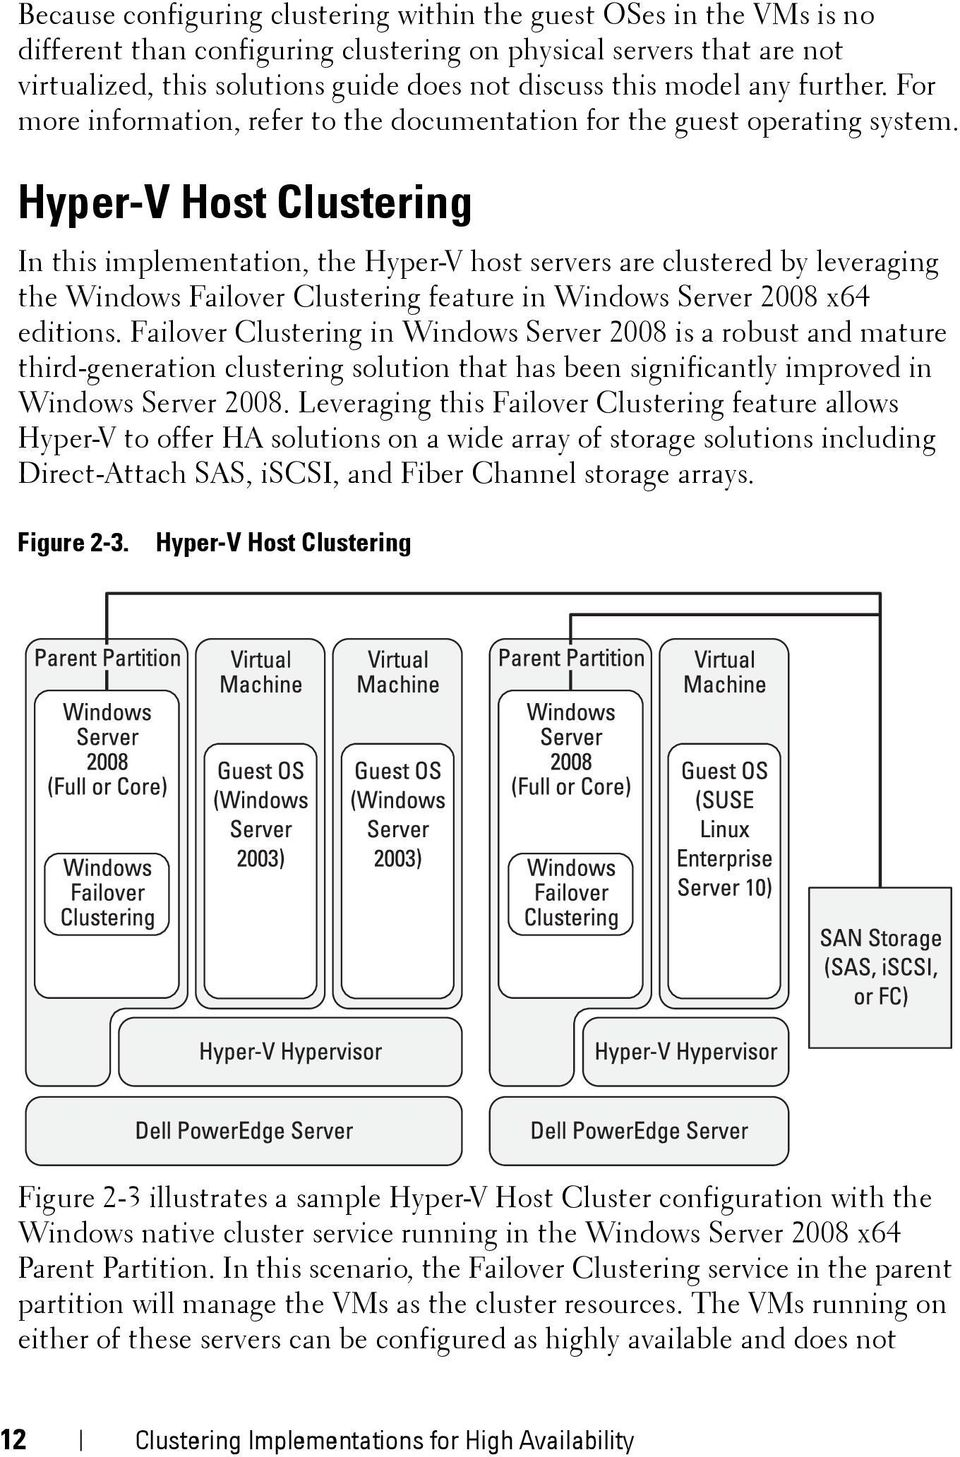 Hyper-V Host Clustering In this implementation, the Hyper-V host servers are clustered by leveraging the Windows Failover Clustering feature in Windows Server 2008 x64 editions.